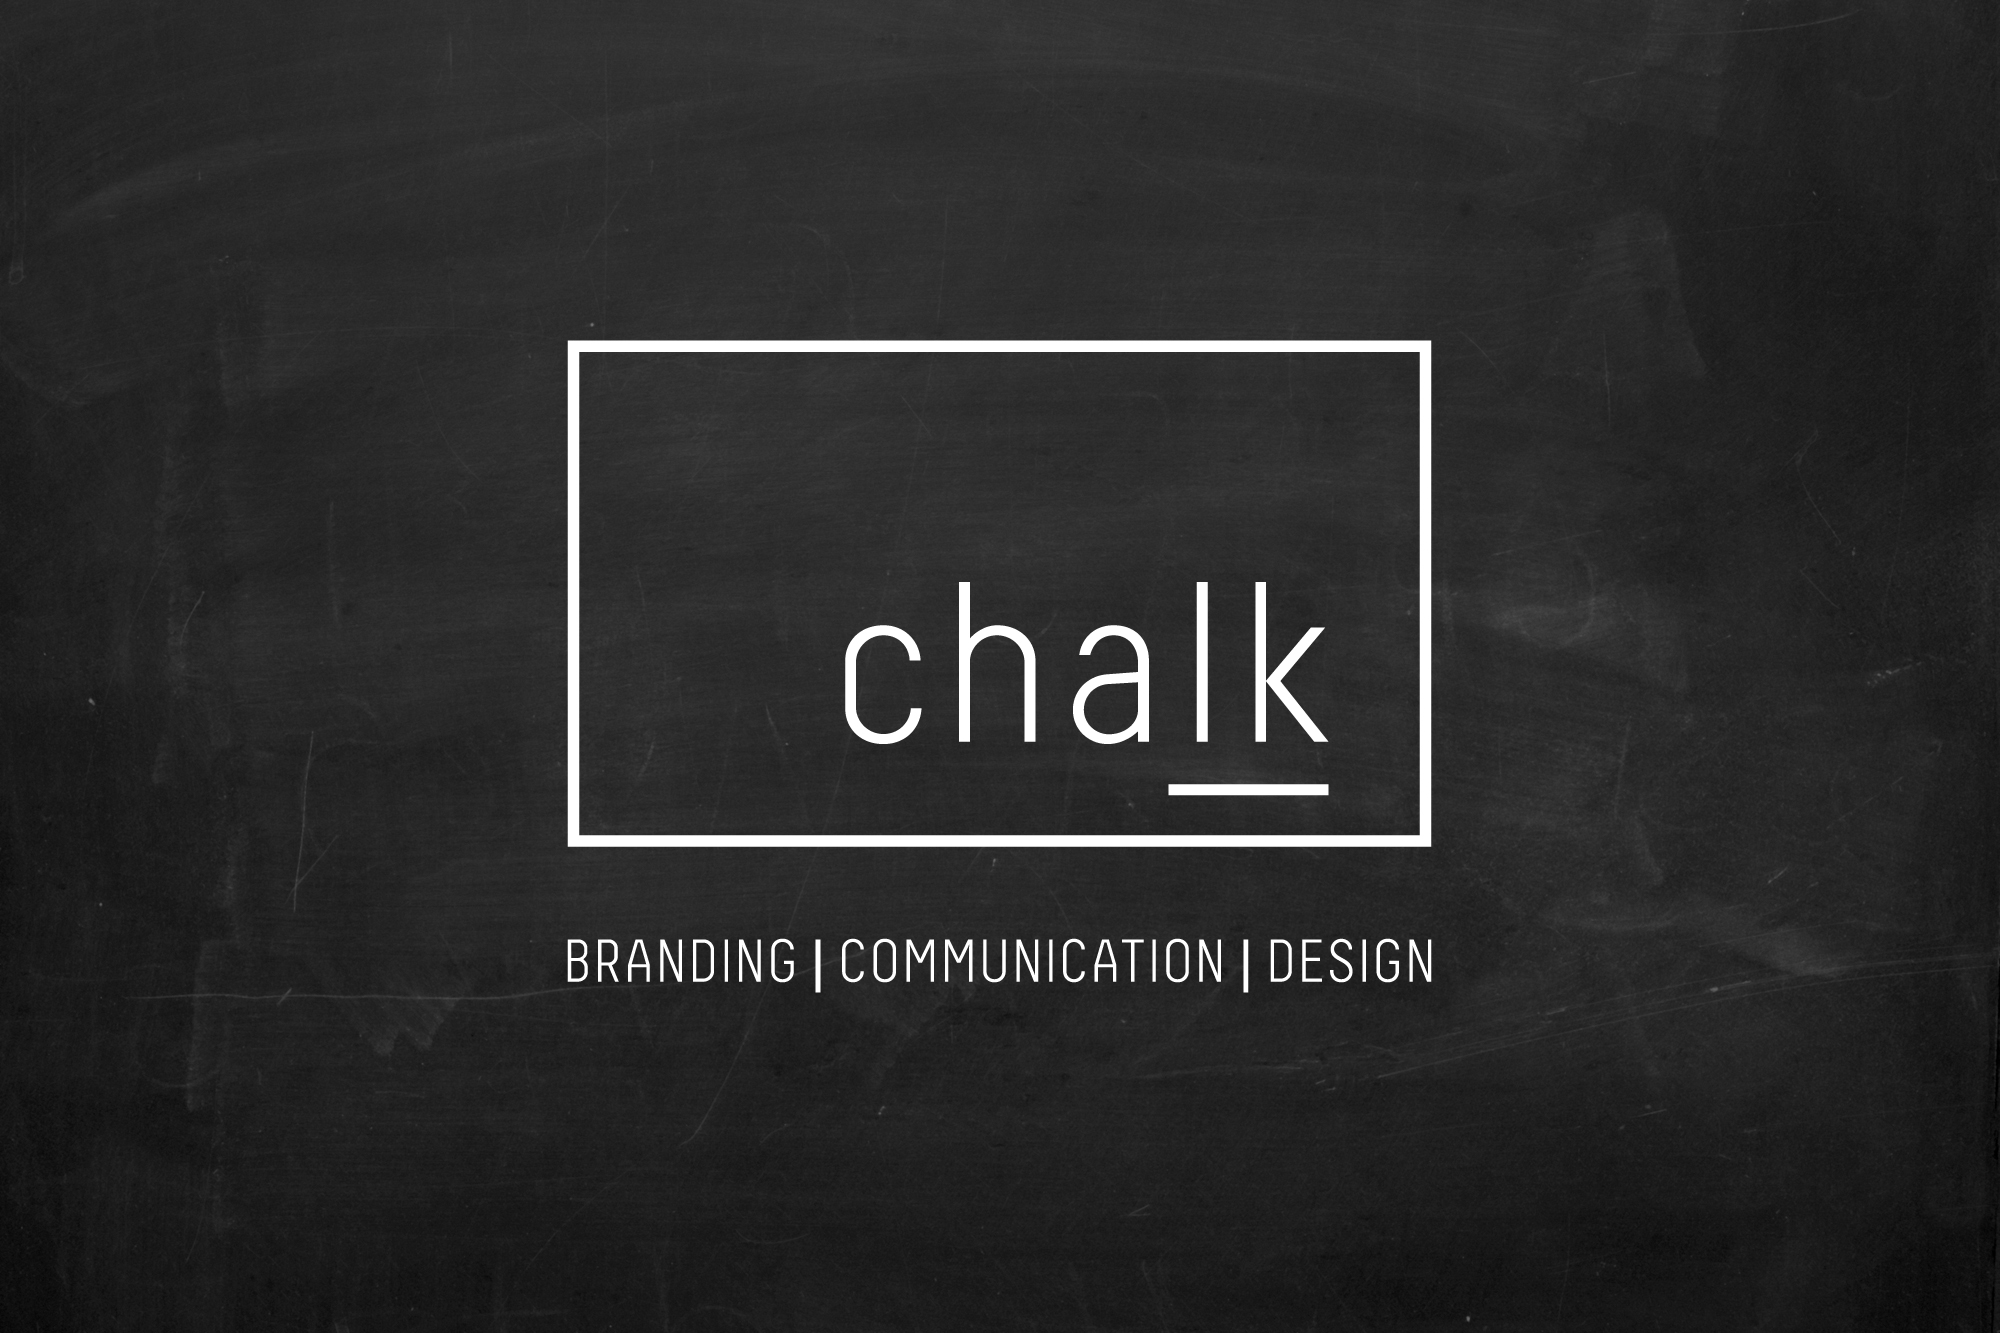 chalk montreal design studio graphic design packaging web